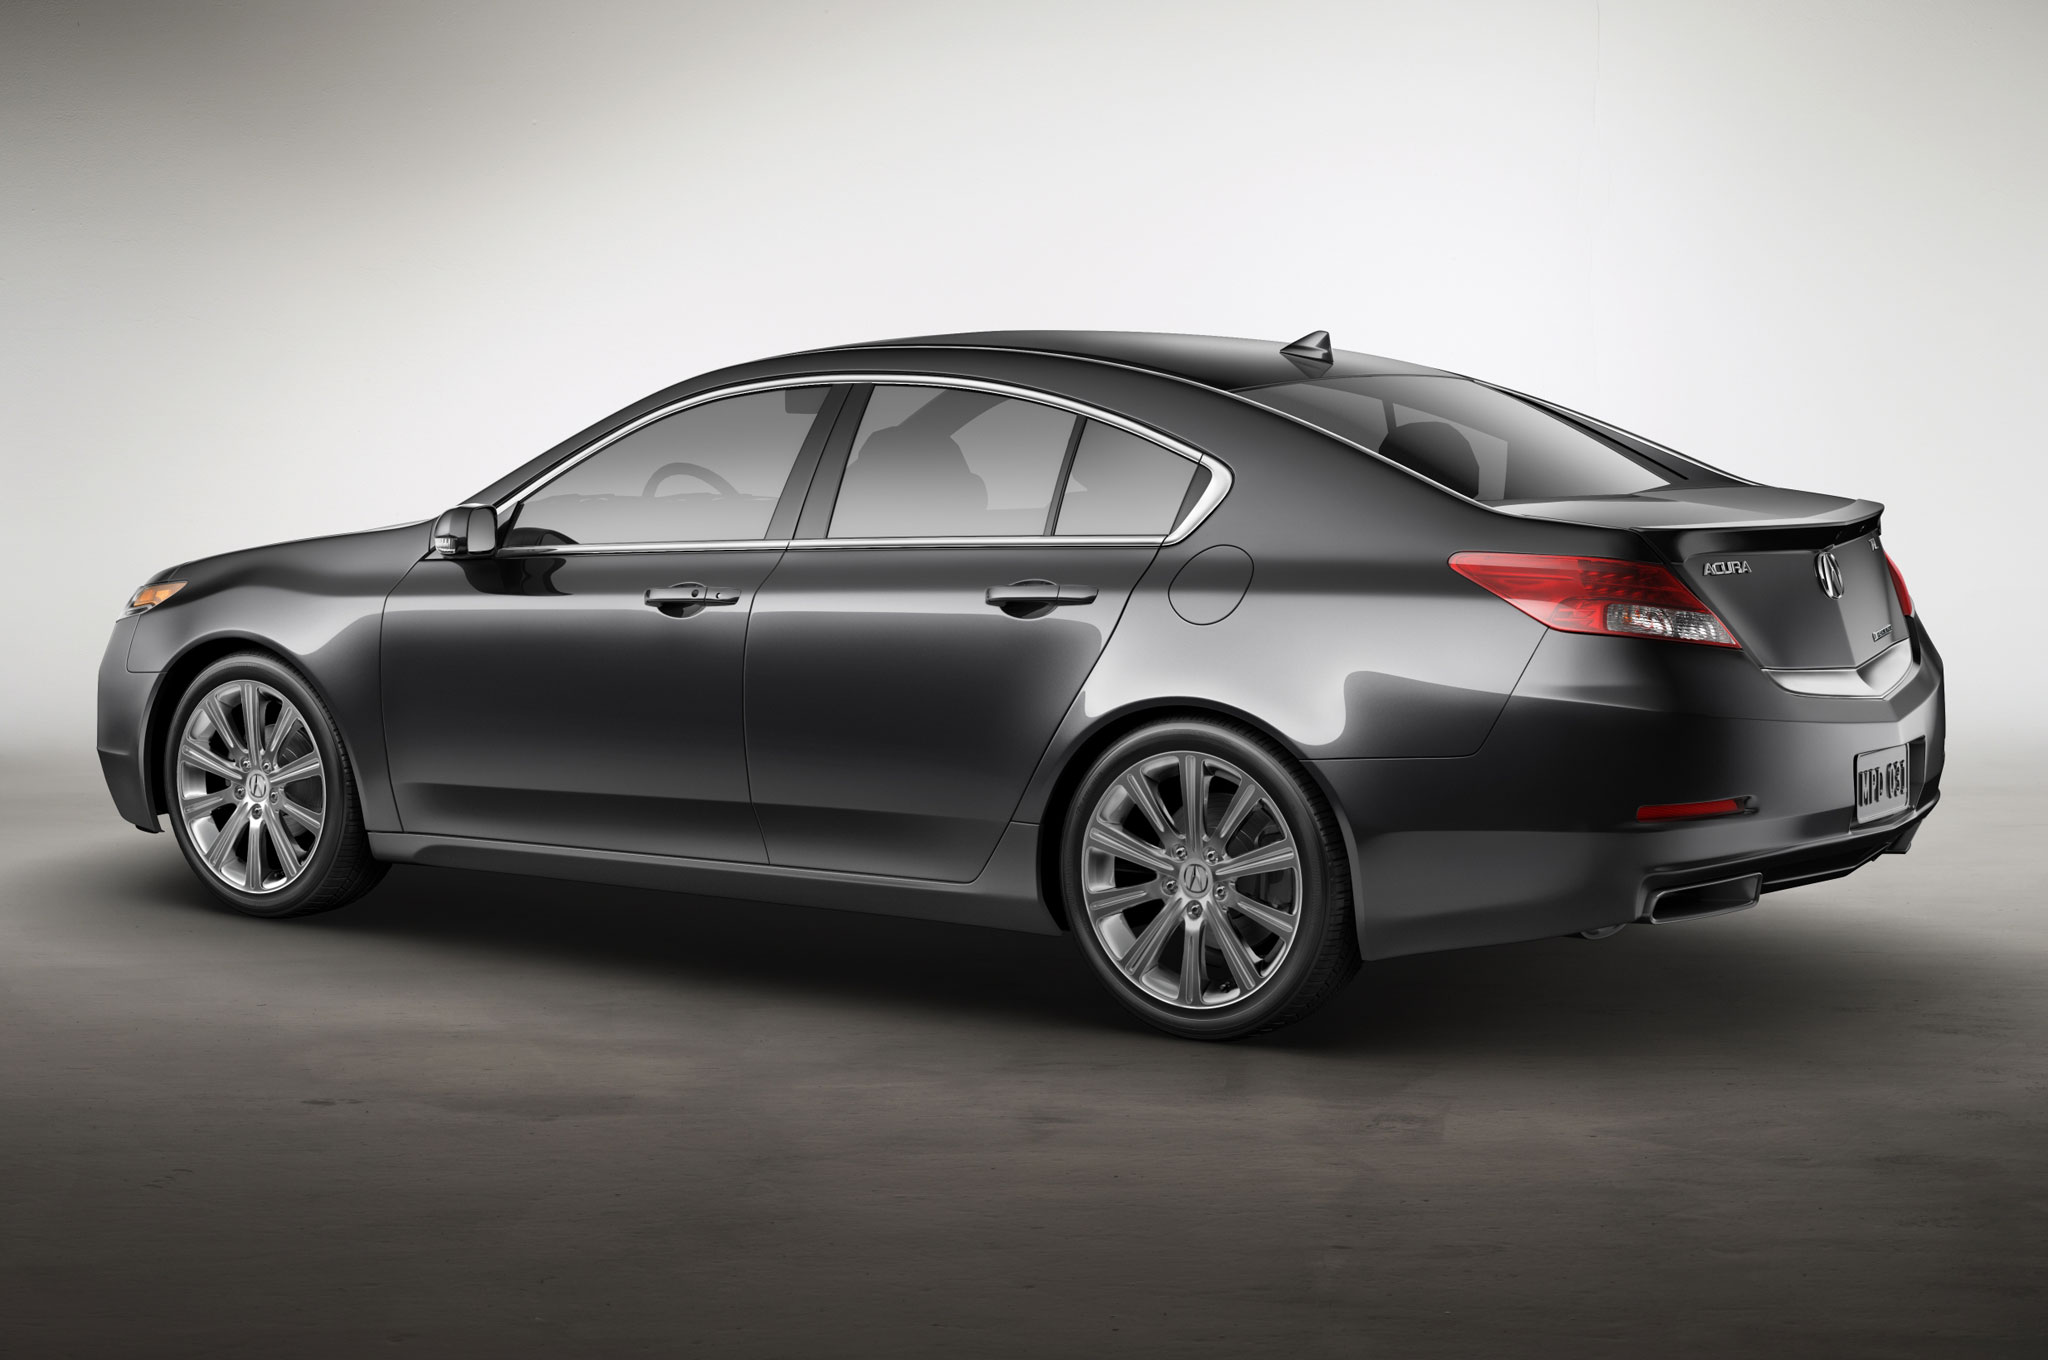 2013 Acura TL Special Edition Rear Side View1